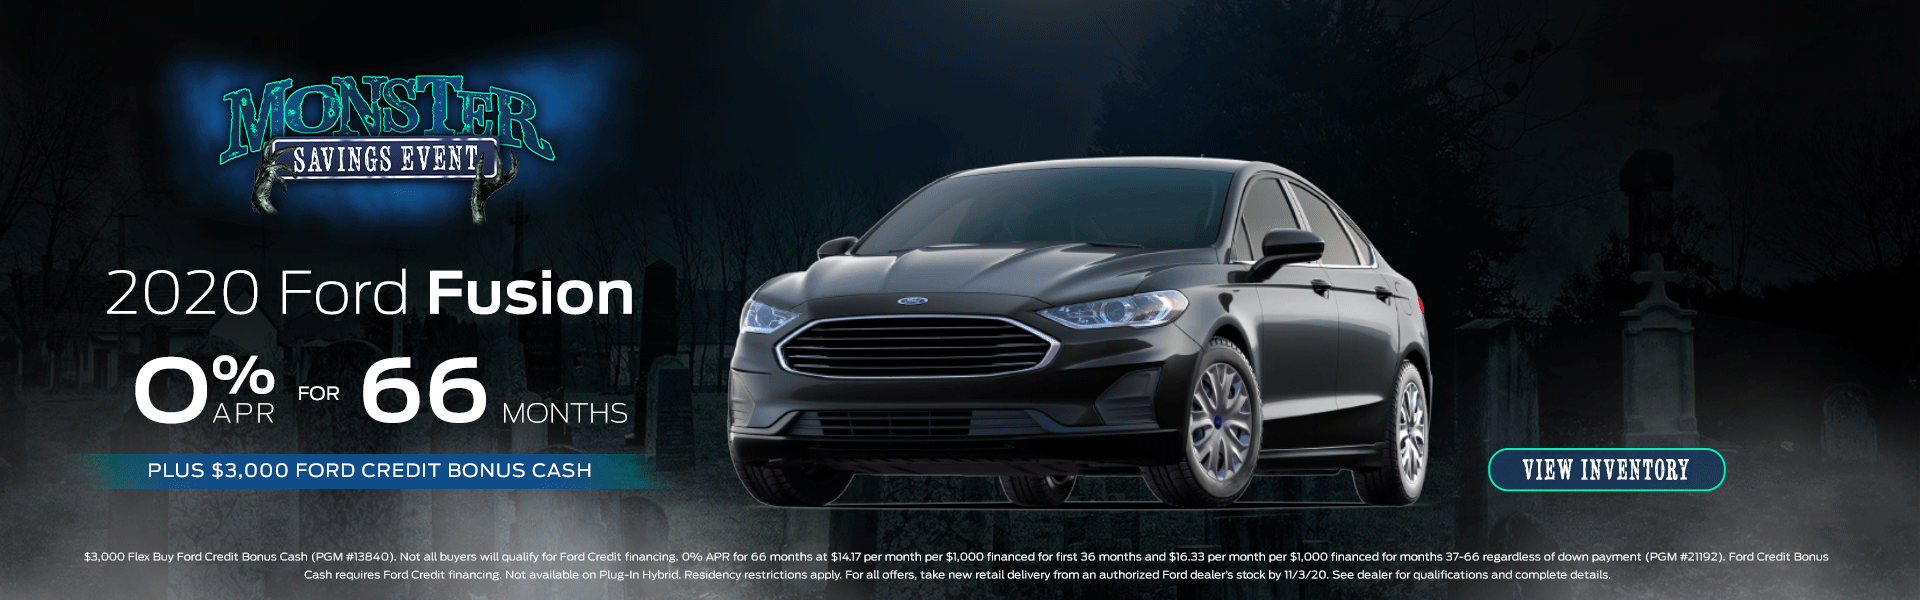 2020 Ford Fusion Monster Savings